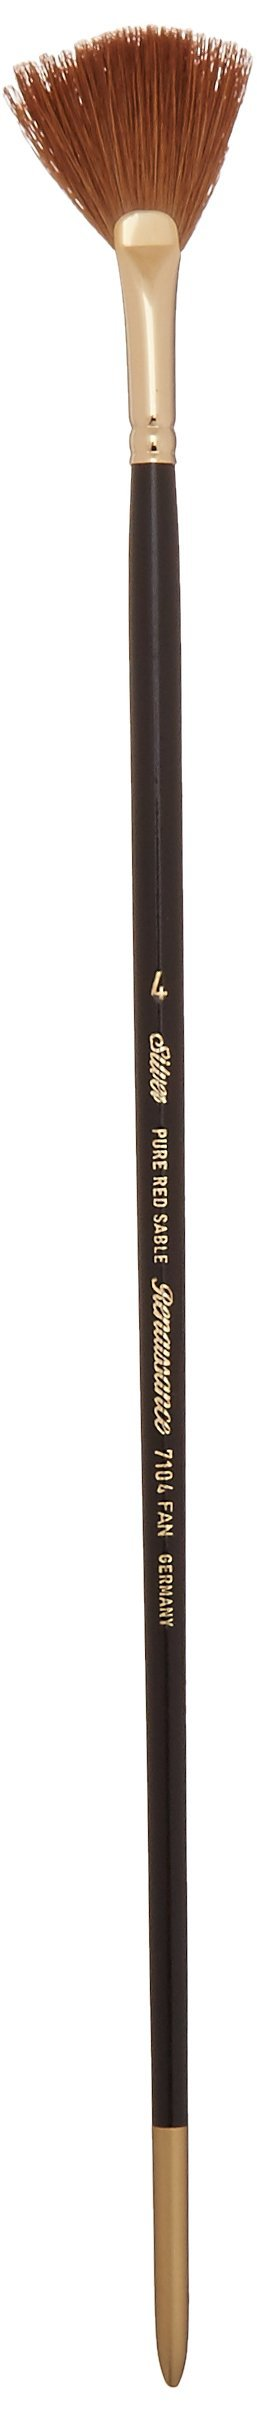 Silver Brush 7104-4 Renaissance Pure Red Sable Long Handle Premium Quality Brush, Fan Blender, Size 4 by Silver Brush Limited